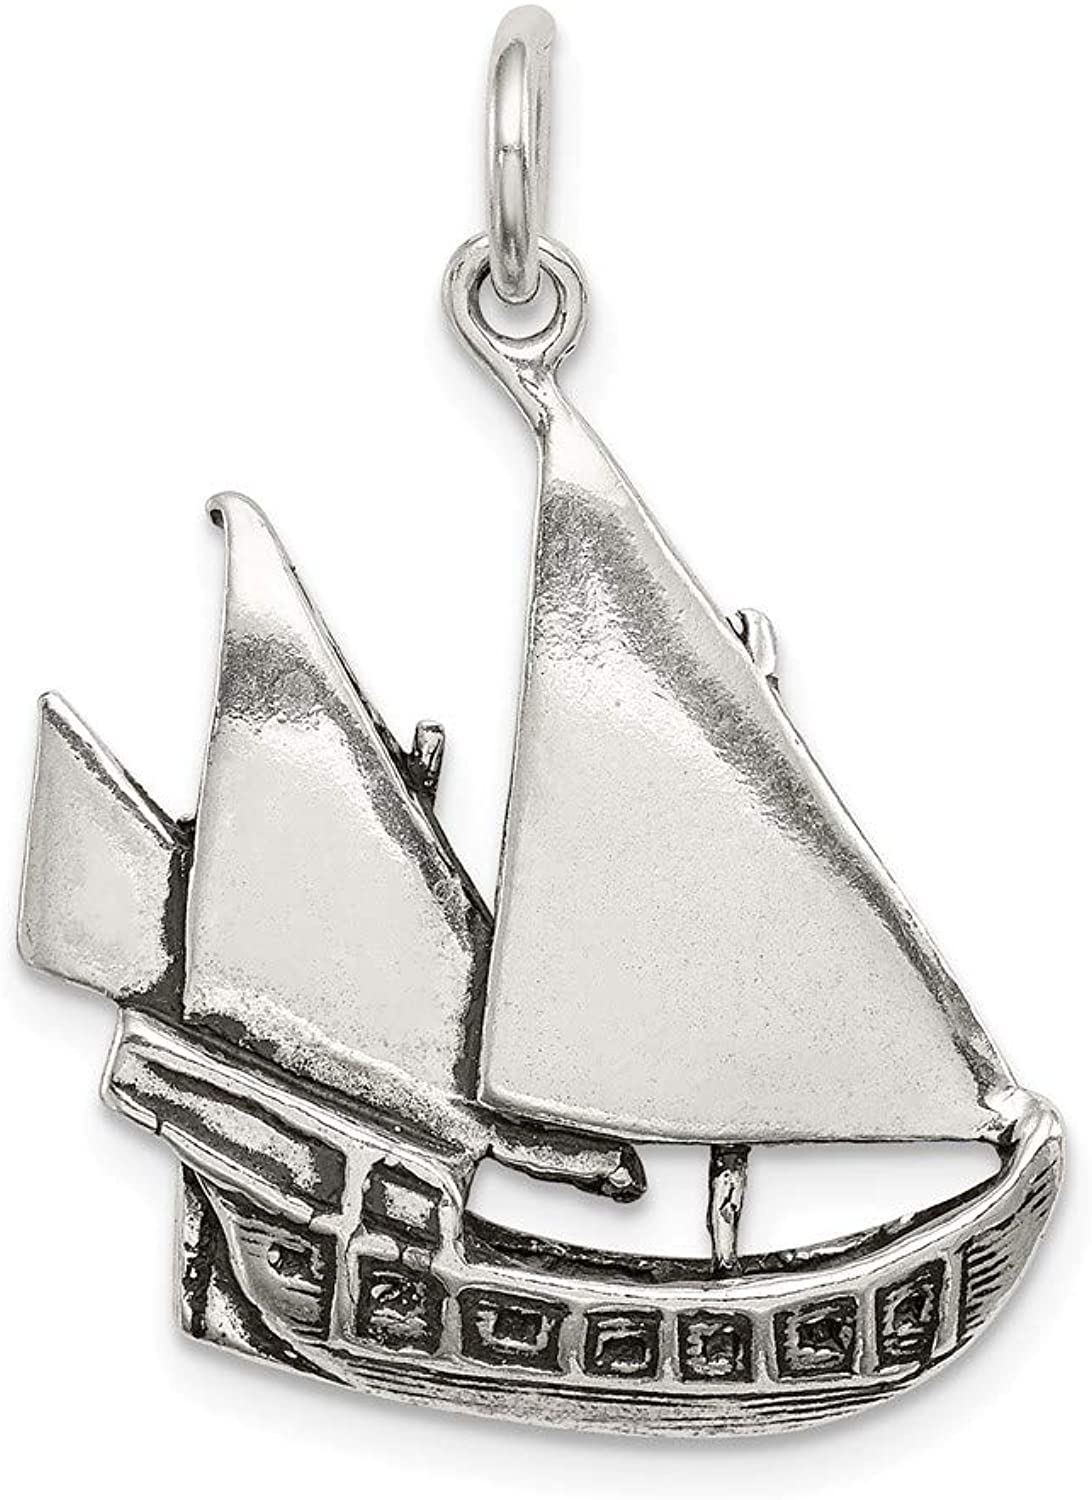 FB Jewels Solid Sterling Silver Antiqued Boat Charm